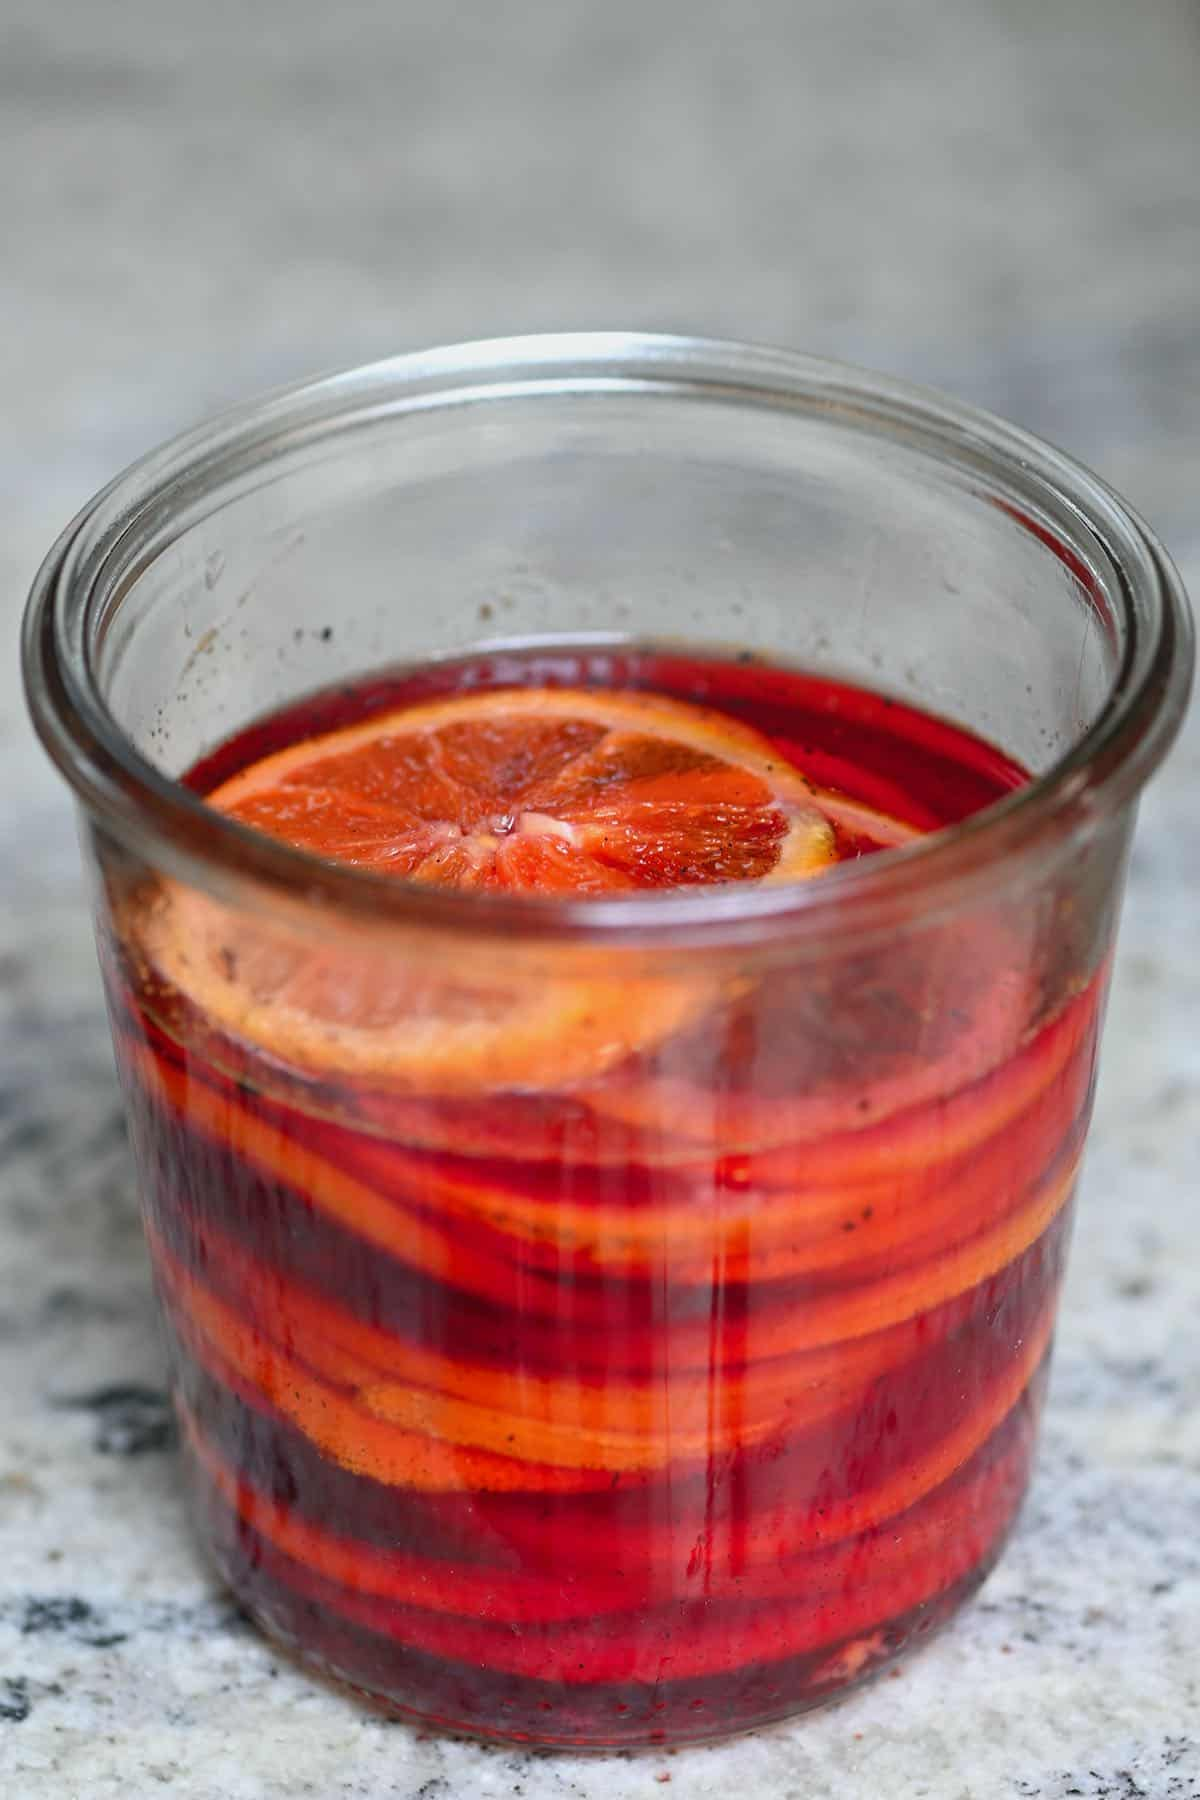 Candied orange slices in a jar with syrup